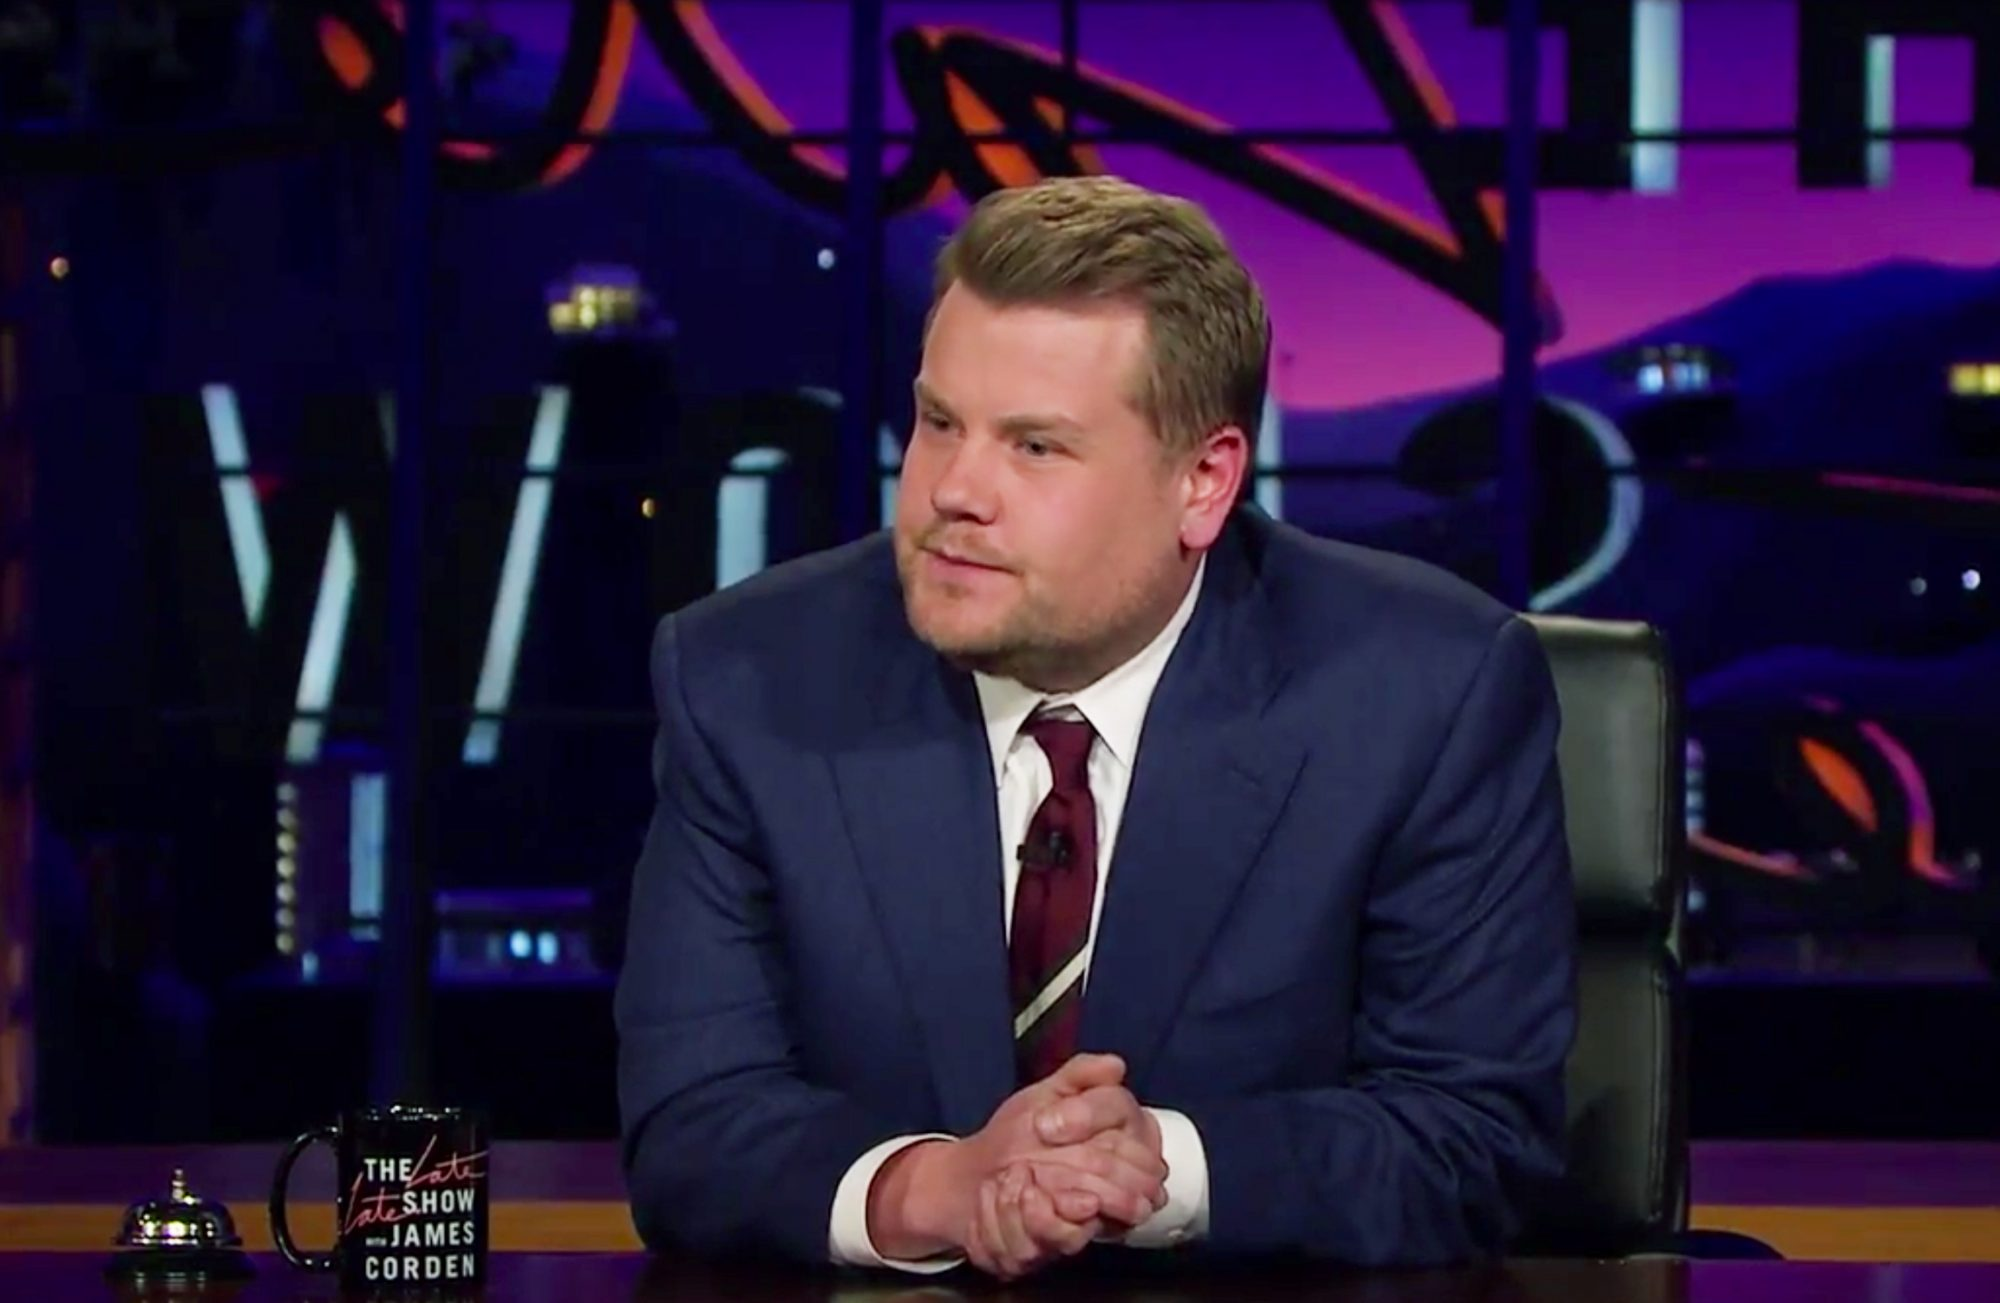 James Corden Offers Emotional Message to Manchester After Attack